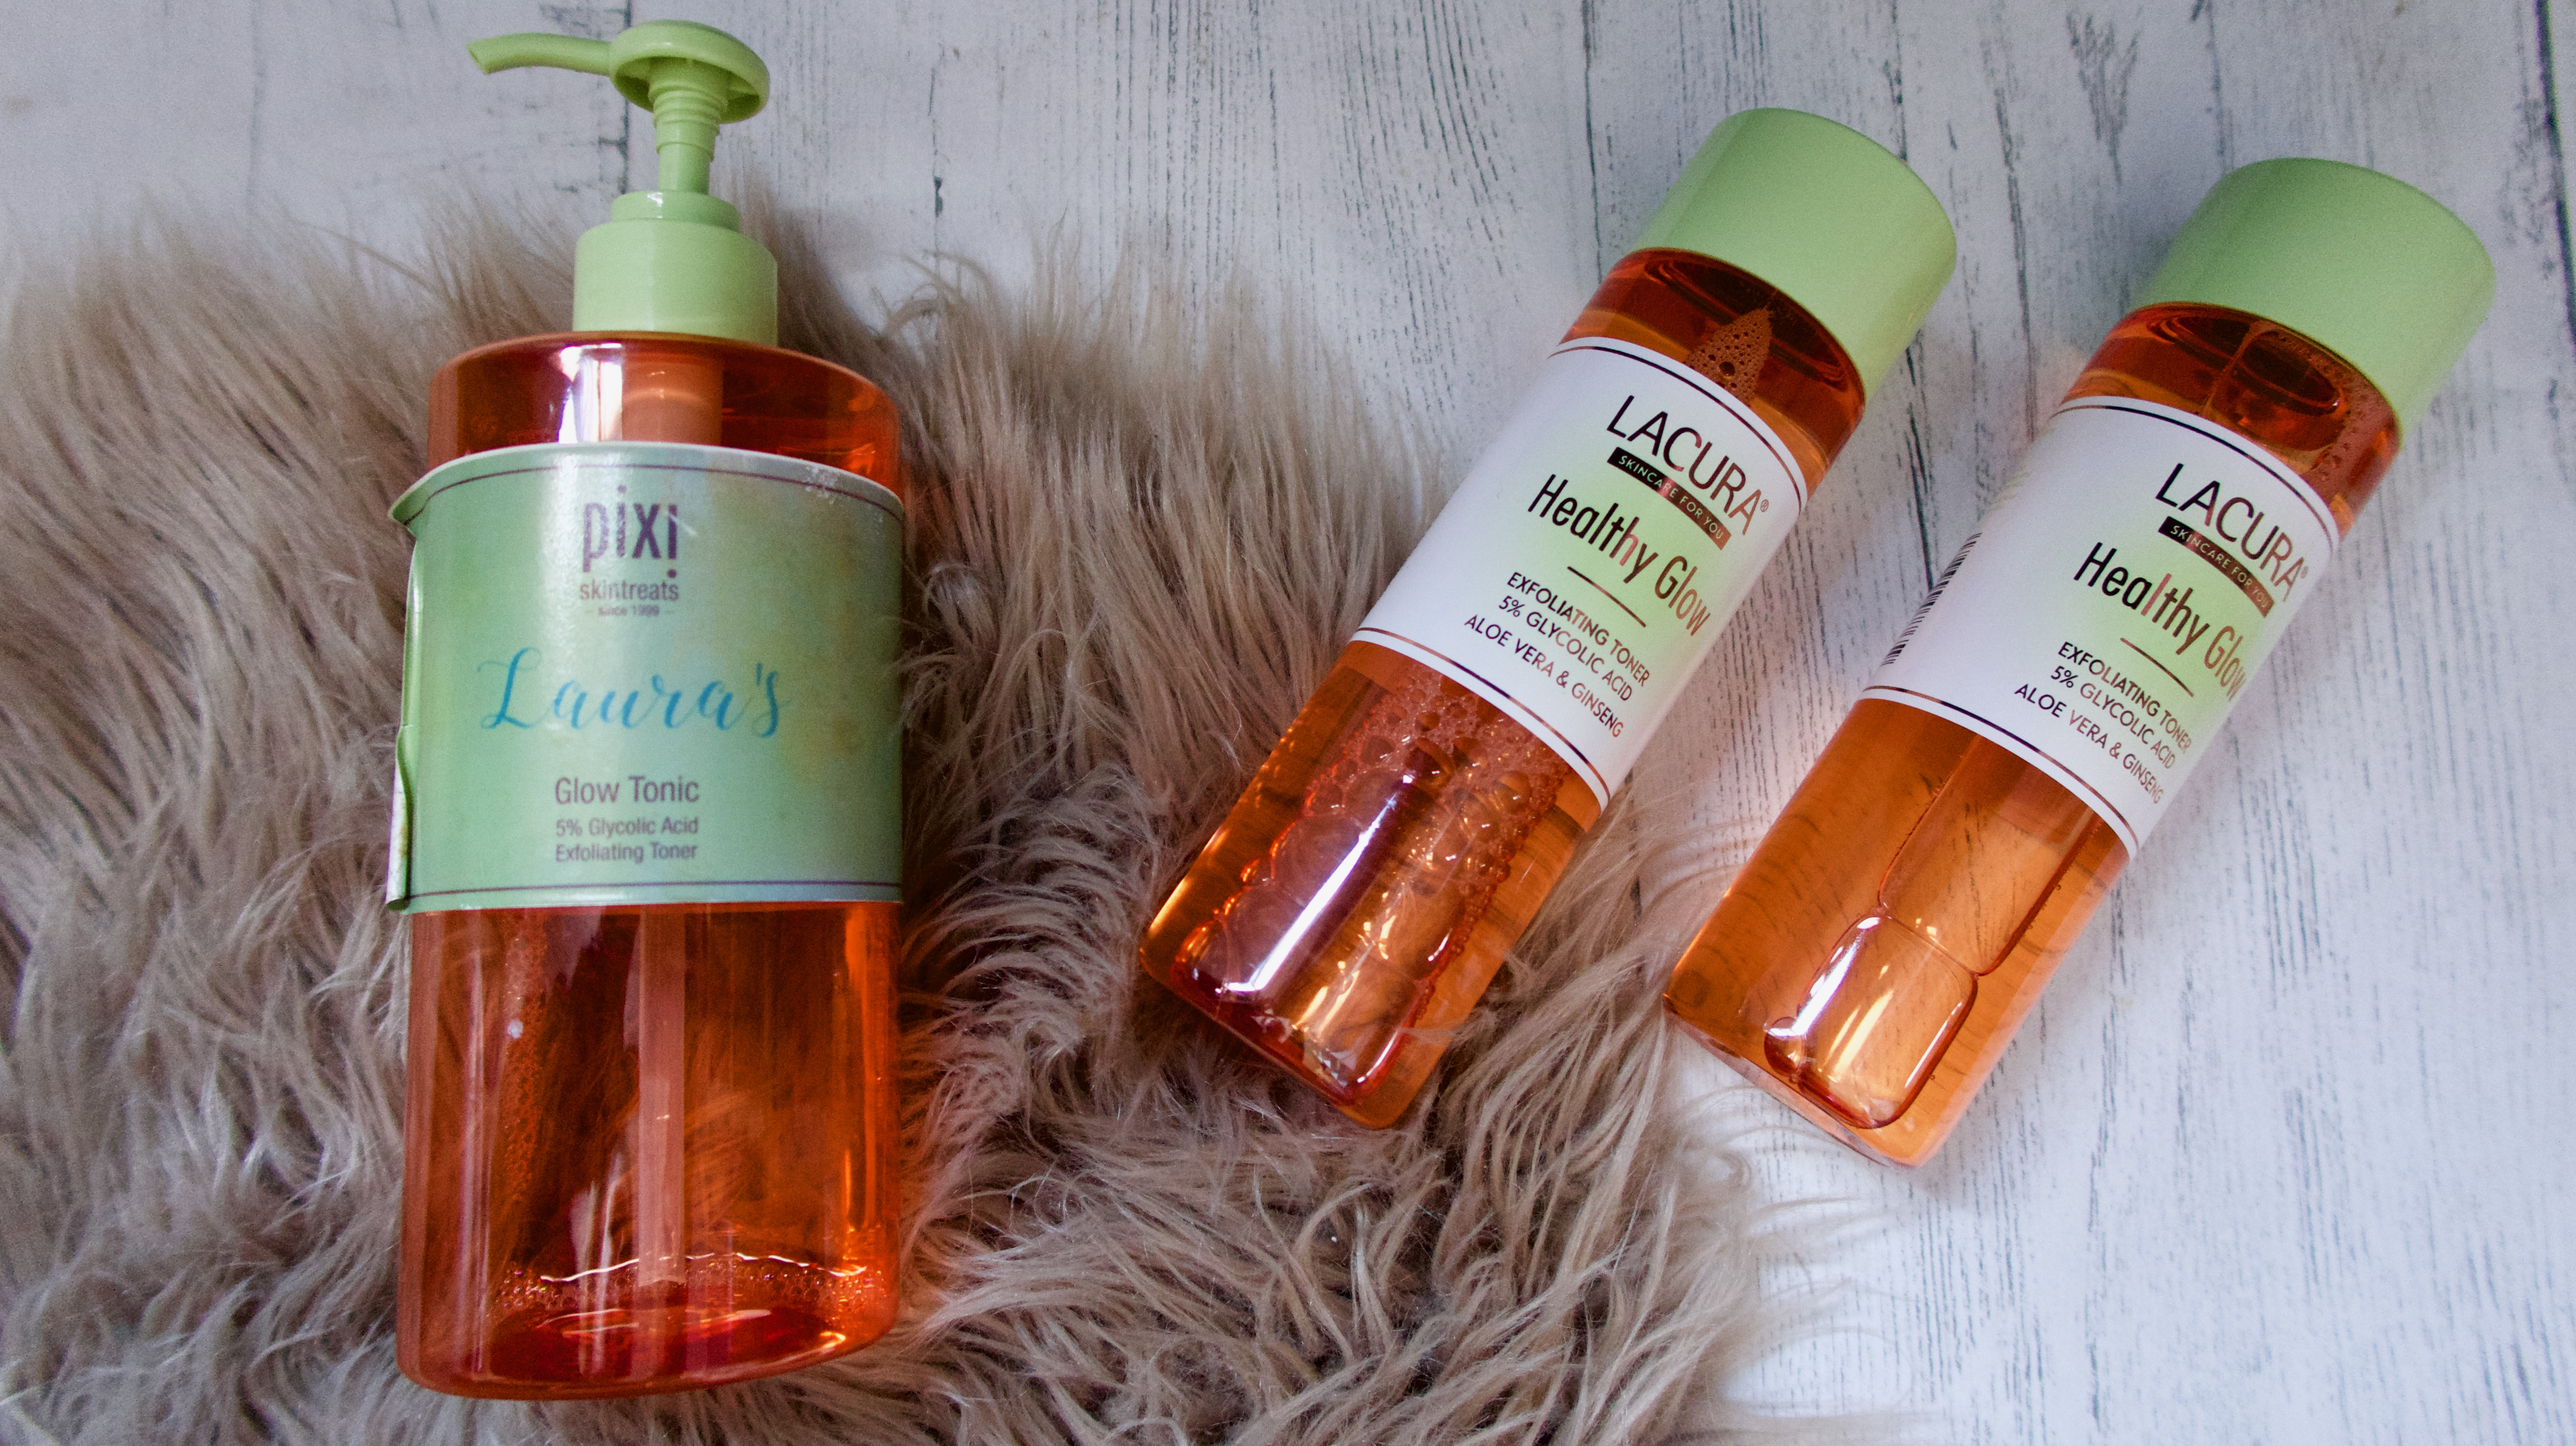 Aldi Healthy Glow vs Pixi Glow Tonic Review 3